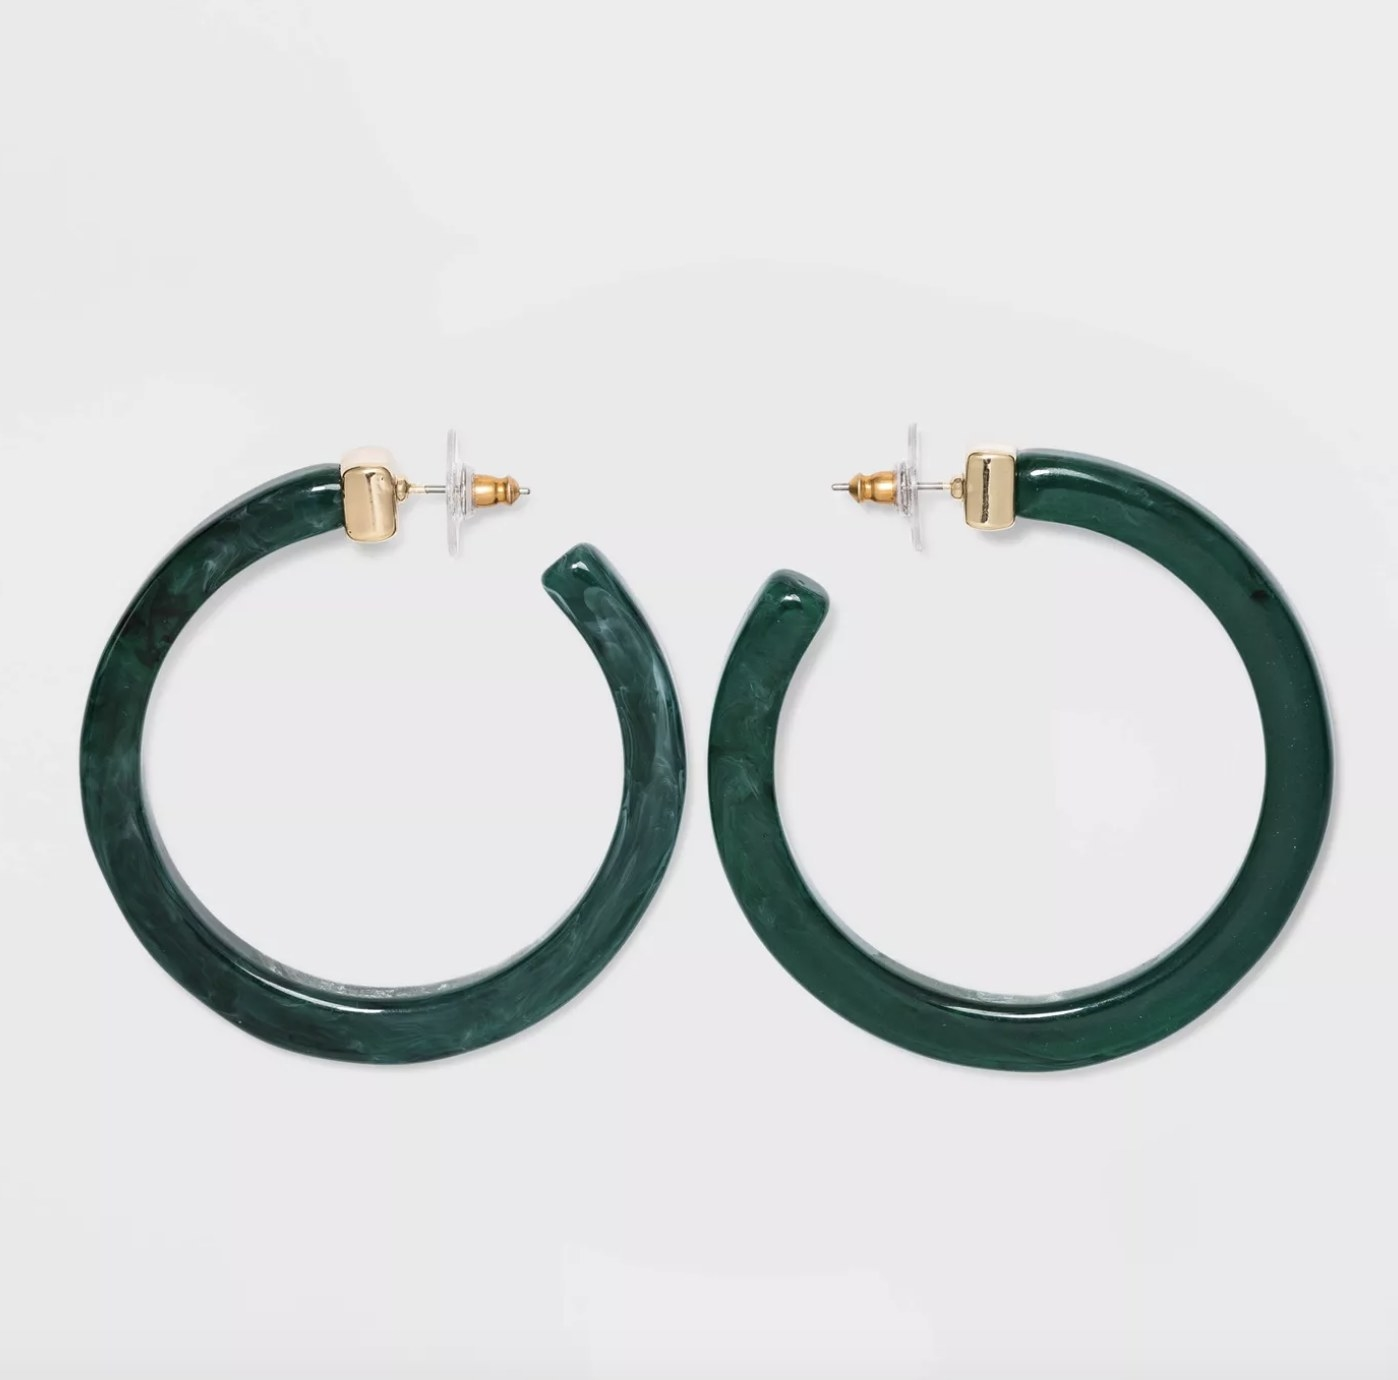 the earrings in green